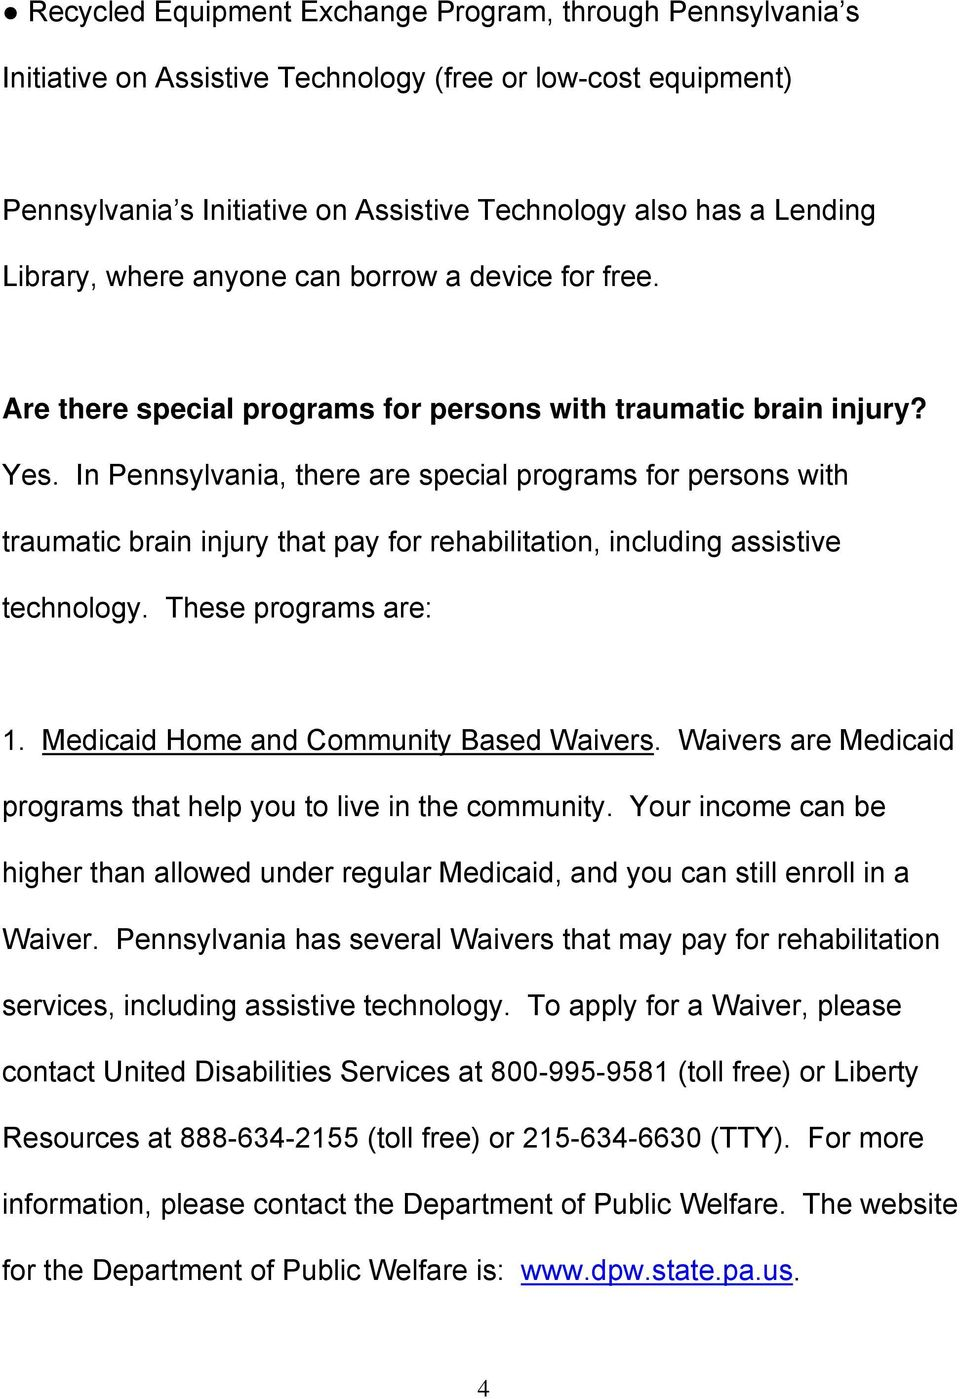 In Pennsylvania, there are special programs for persons with traumatic brain injury that pay for rehabilitation, including assistive technology. These programs are: 1.